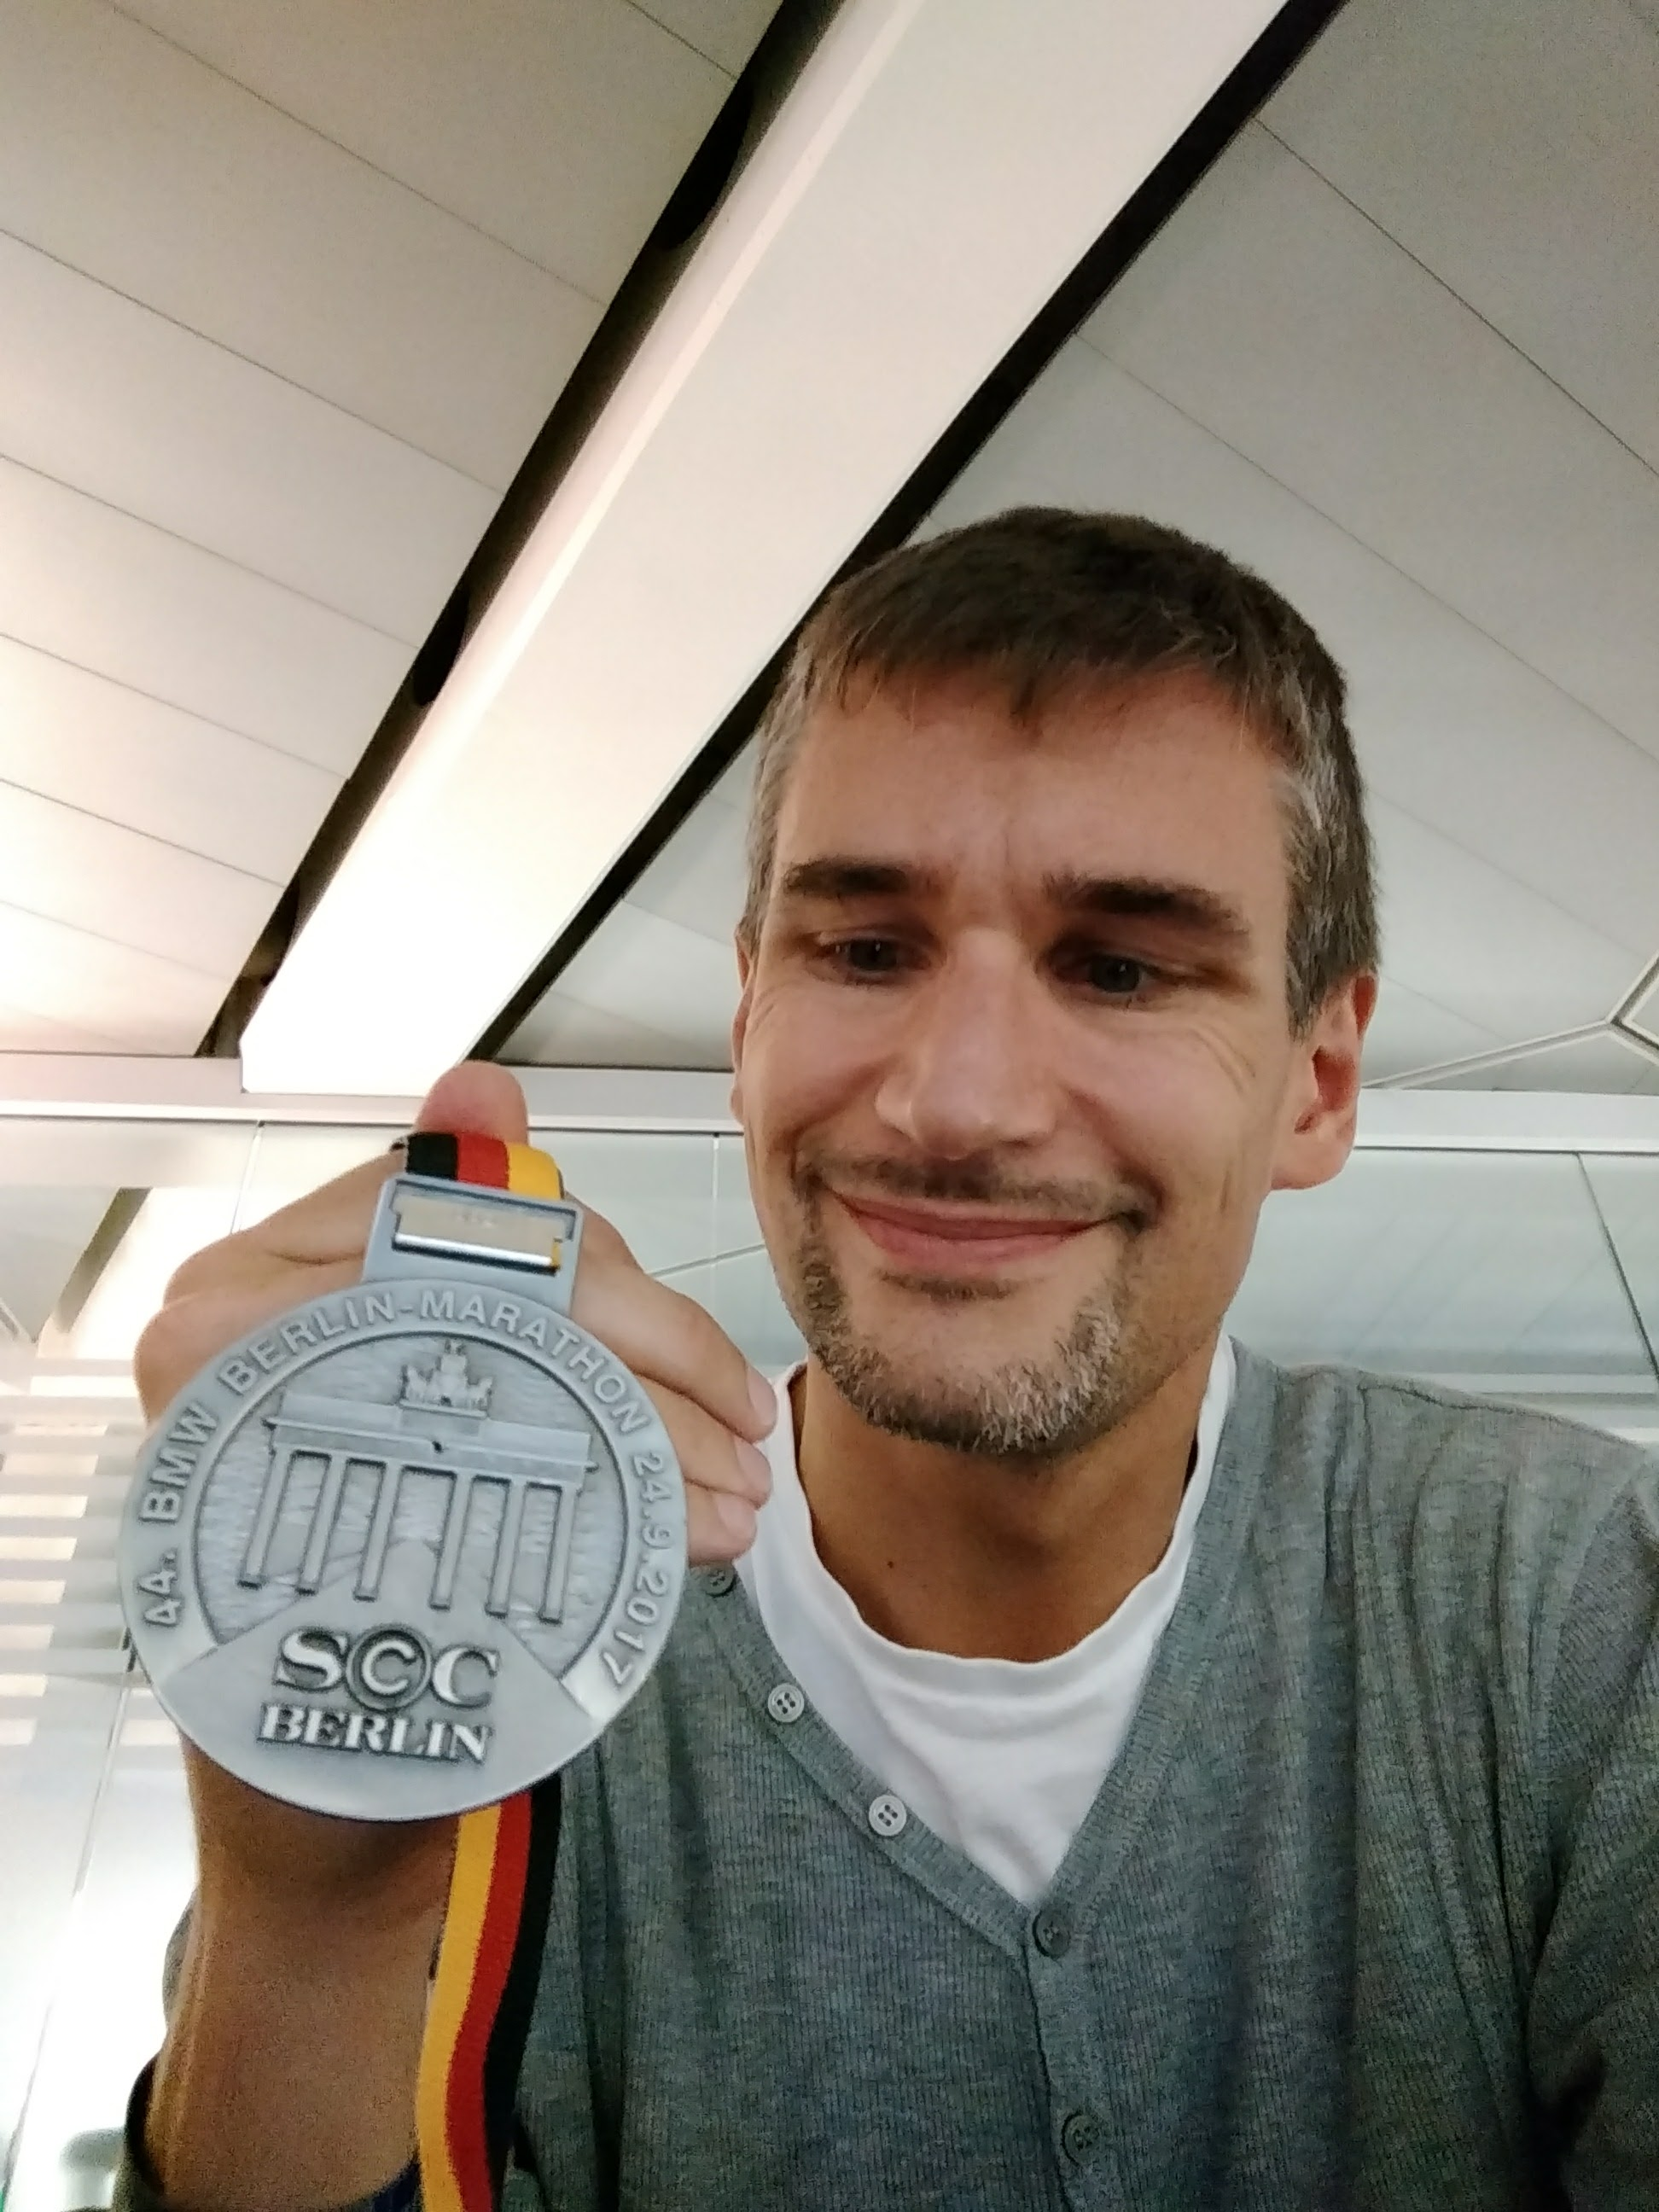 Berlin Marathon bling